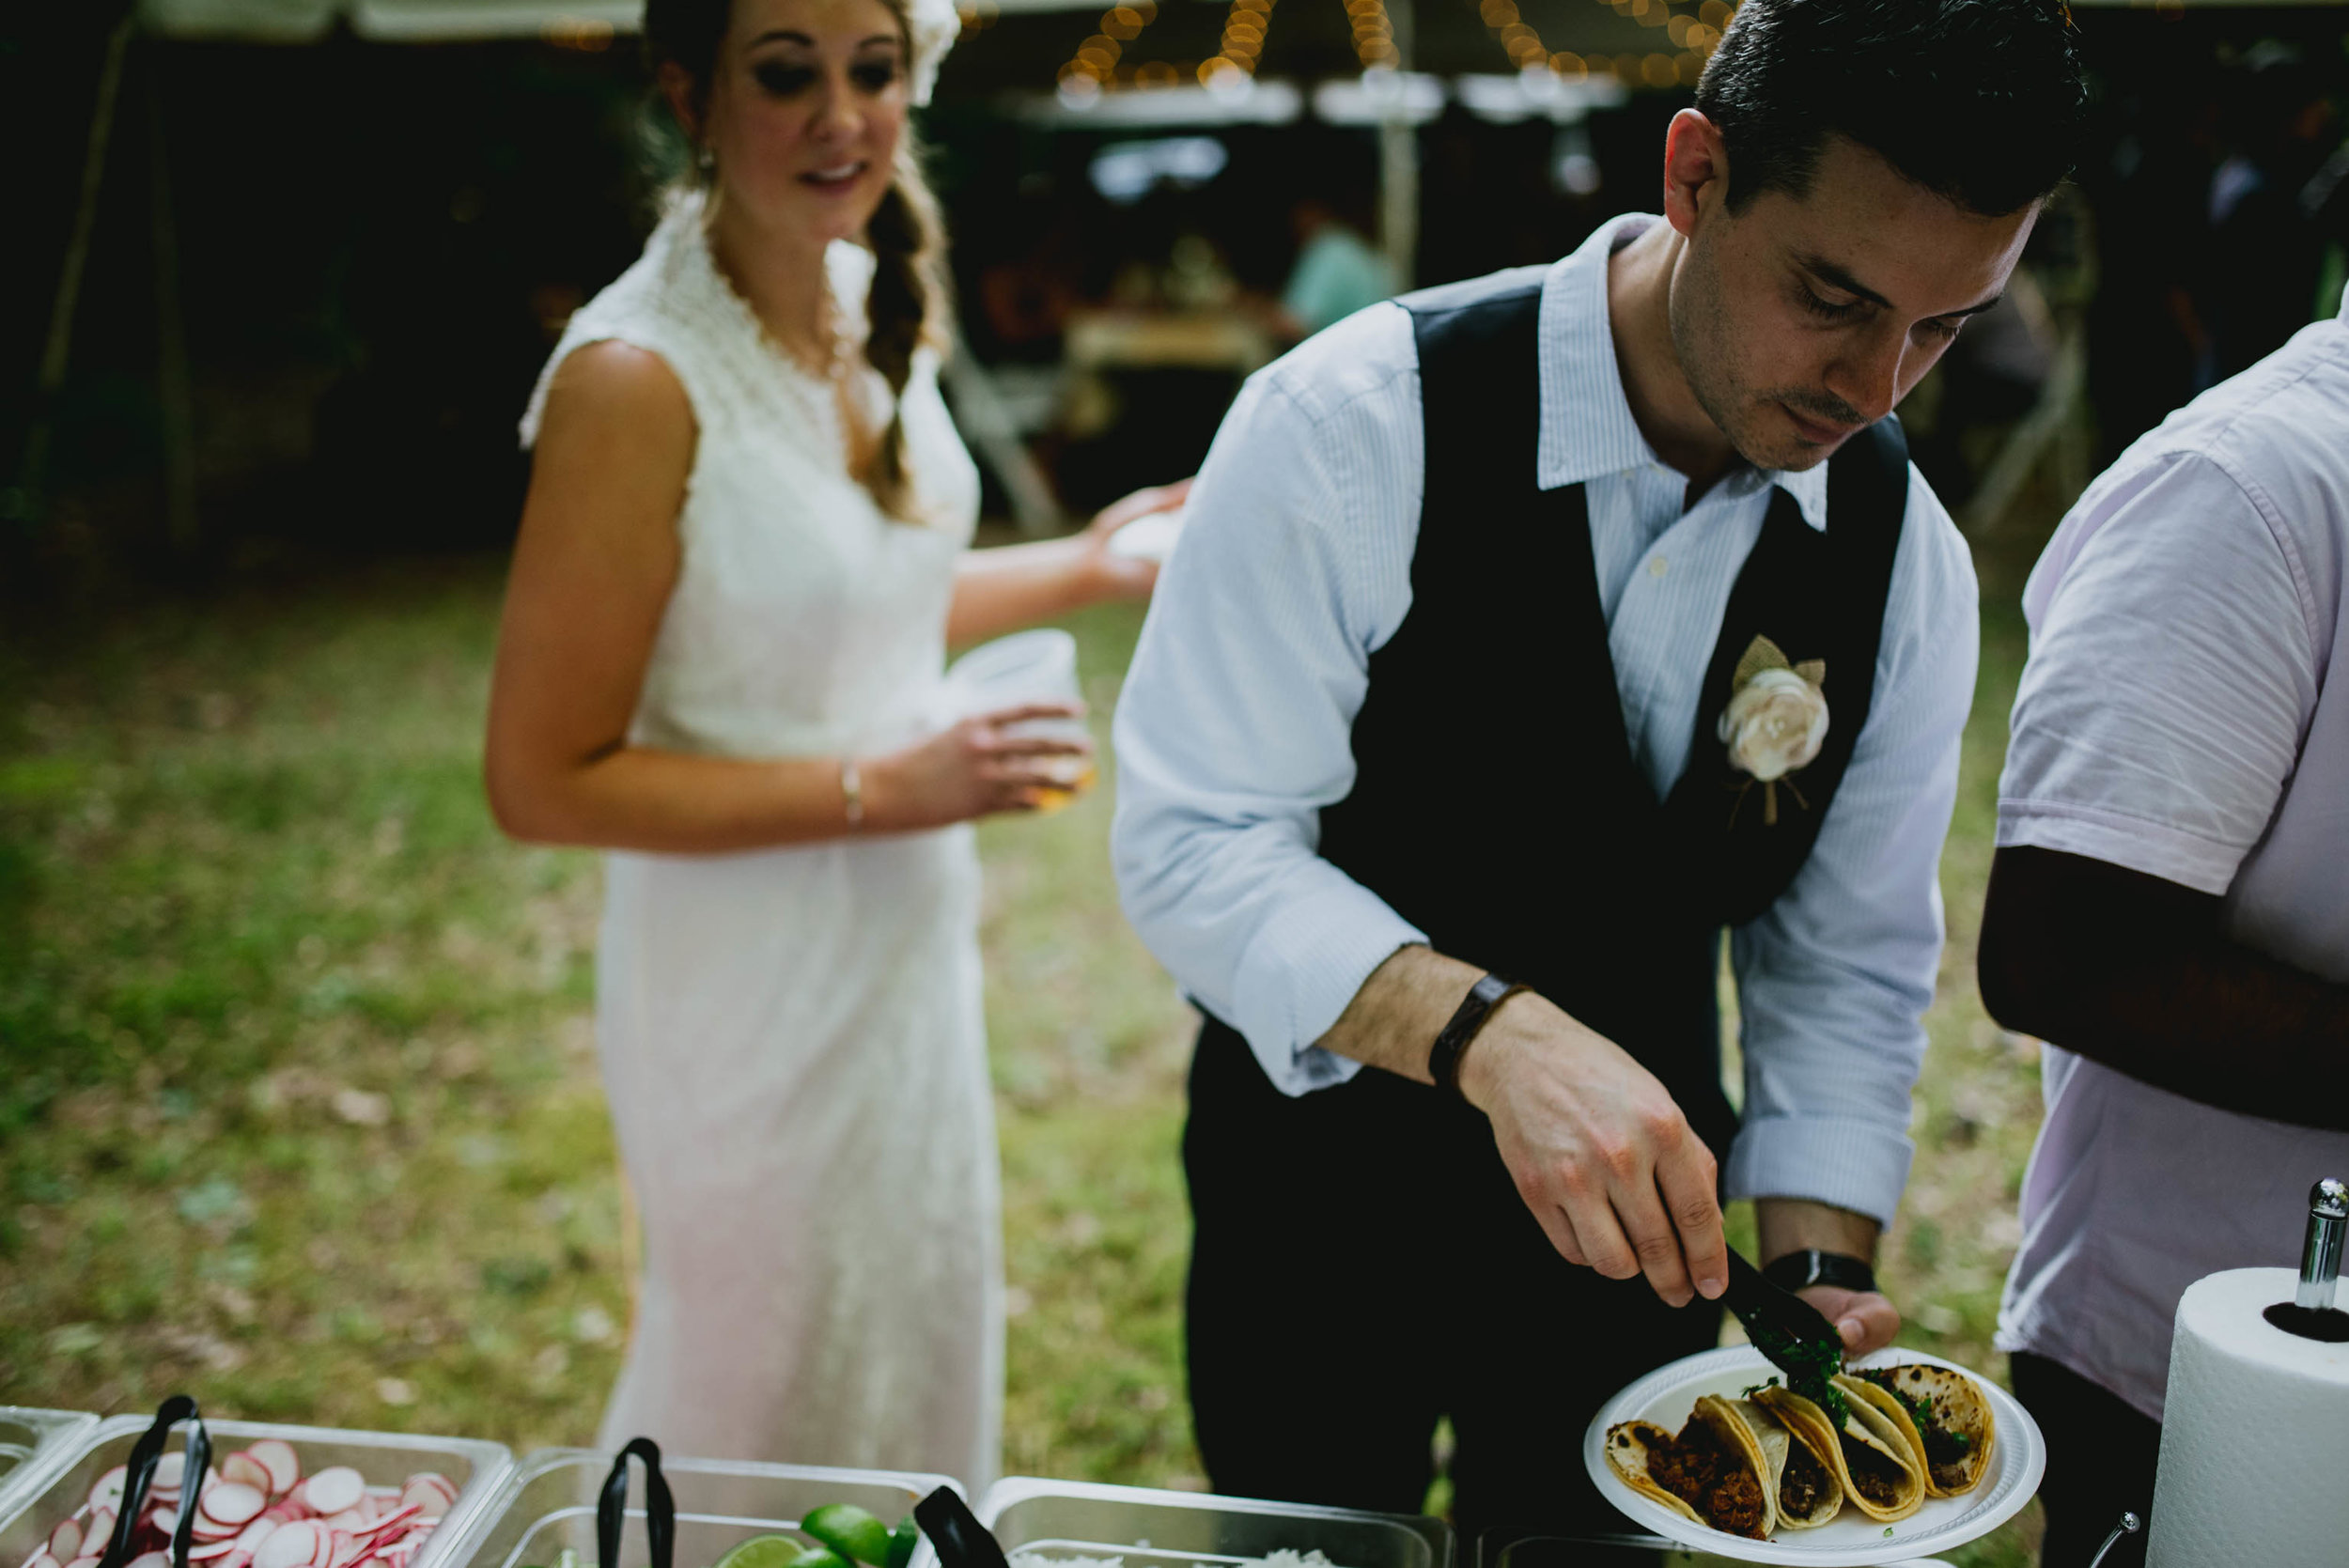 bride and groom getting their taco plates during their wedding reception